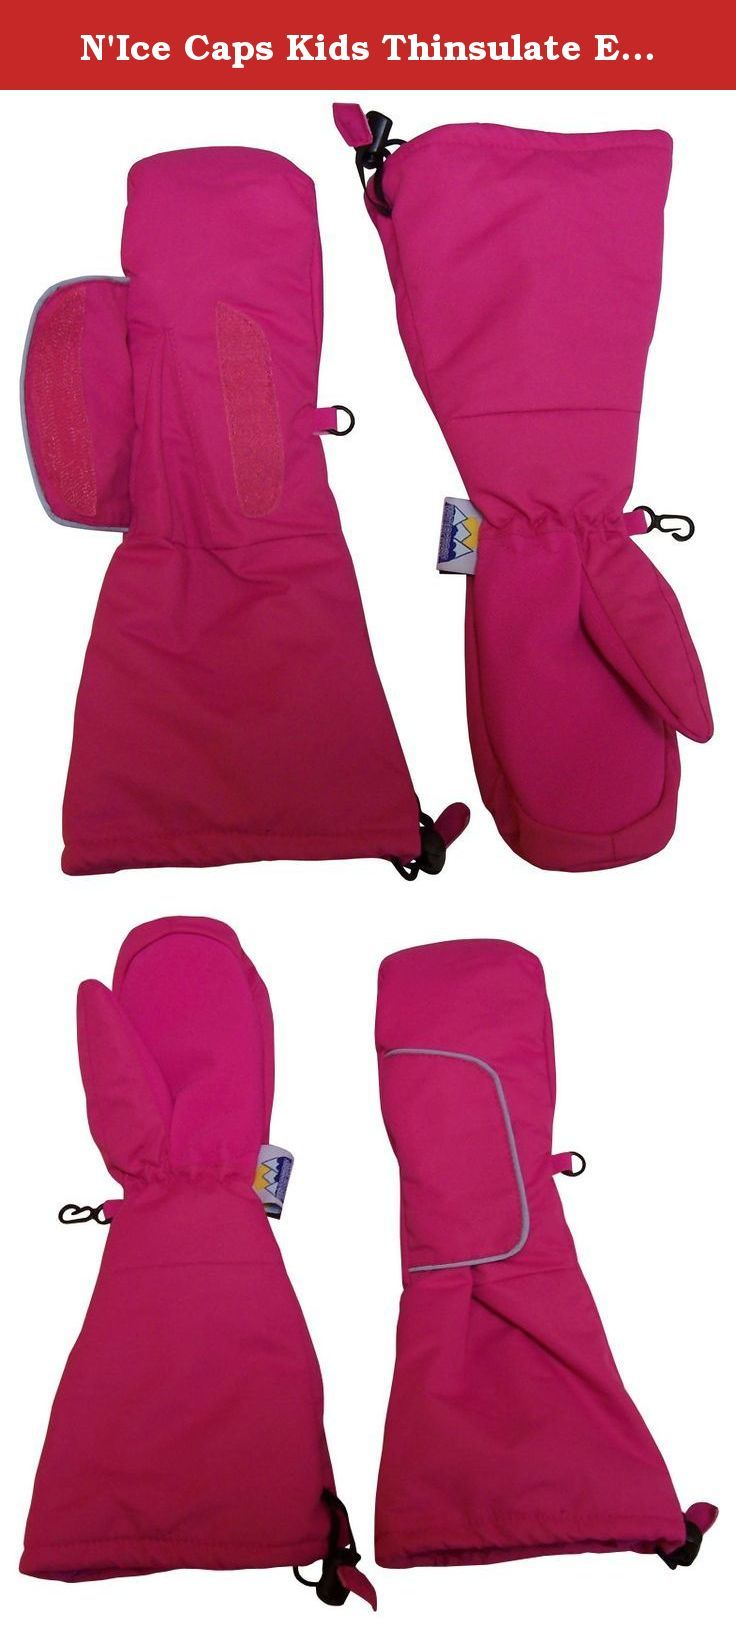 N'Ice Caps Kids Thinsulate Easy On Velcro Wrap Mittens with Elbow Length Cuff (2-3yrs, Fuchsia). N'Ice Caps Kids Thinsulate Easy On Velcro Wrap Mittens with Elbow Length Cuff. 80 Gram 3M Thinsulate lining recommended for extreme cold weather. Reflector trim for added safety purposes, will glow in the dark as light shines upon it. Long extended length cuffs for outdoor snow activities. Colors available: Black; Fuchsia; Navy; Royal; Dark Purple; Light Purple. Sizes available (with product...